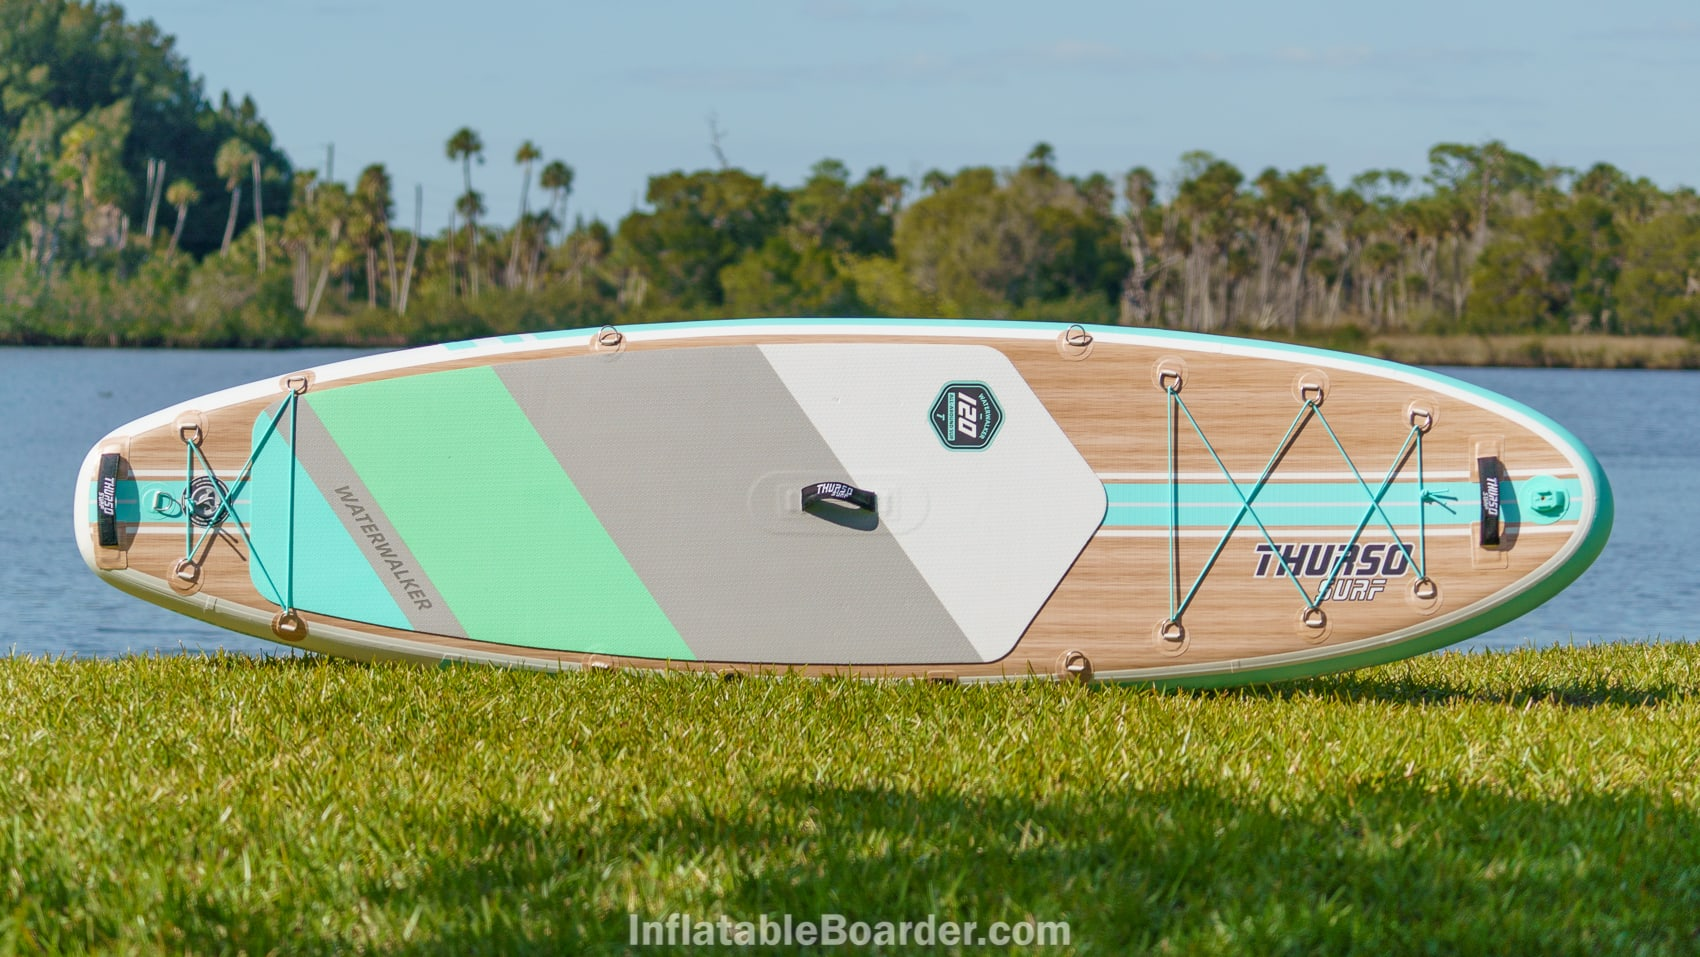 Top overview of the 2021 Thurso Waterwalker 120 in aqua color option.